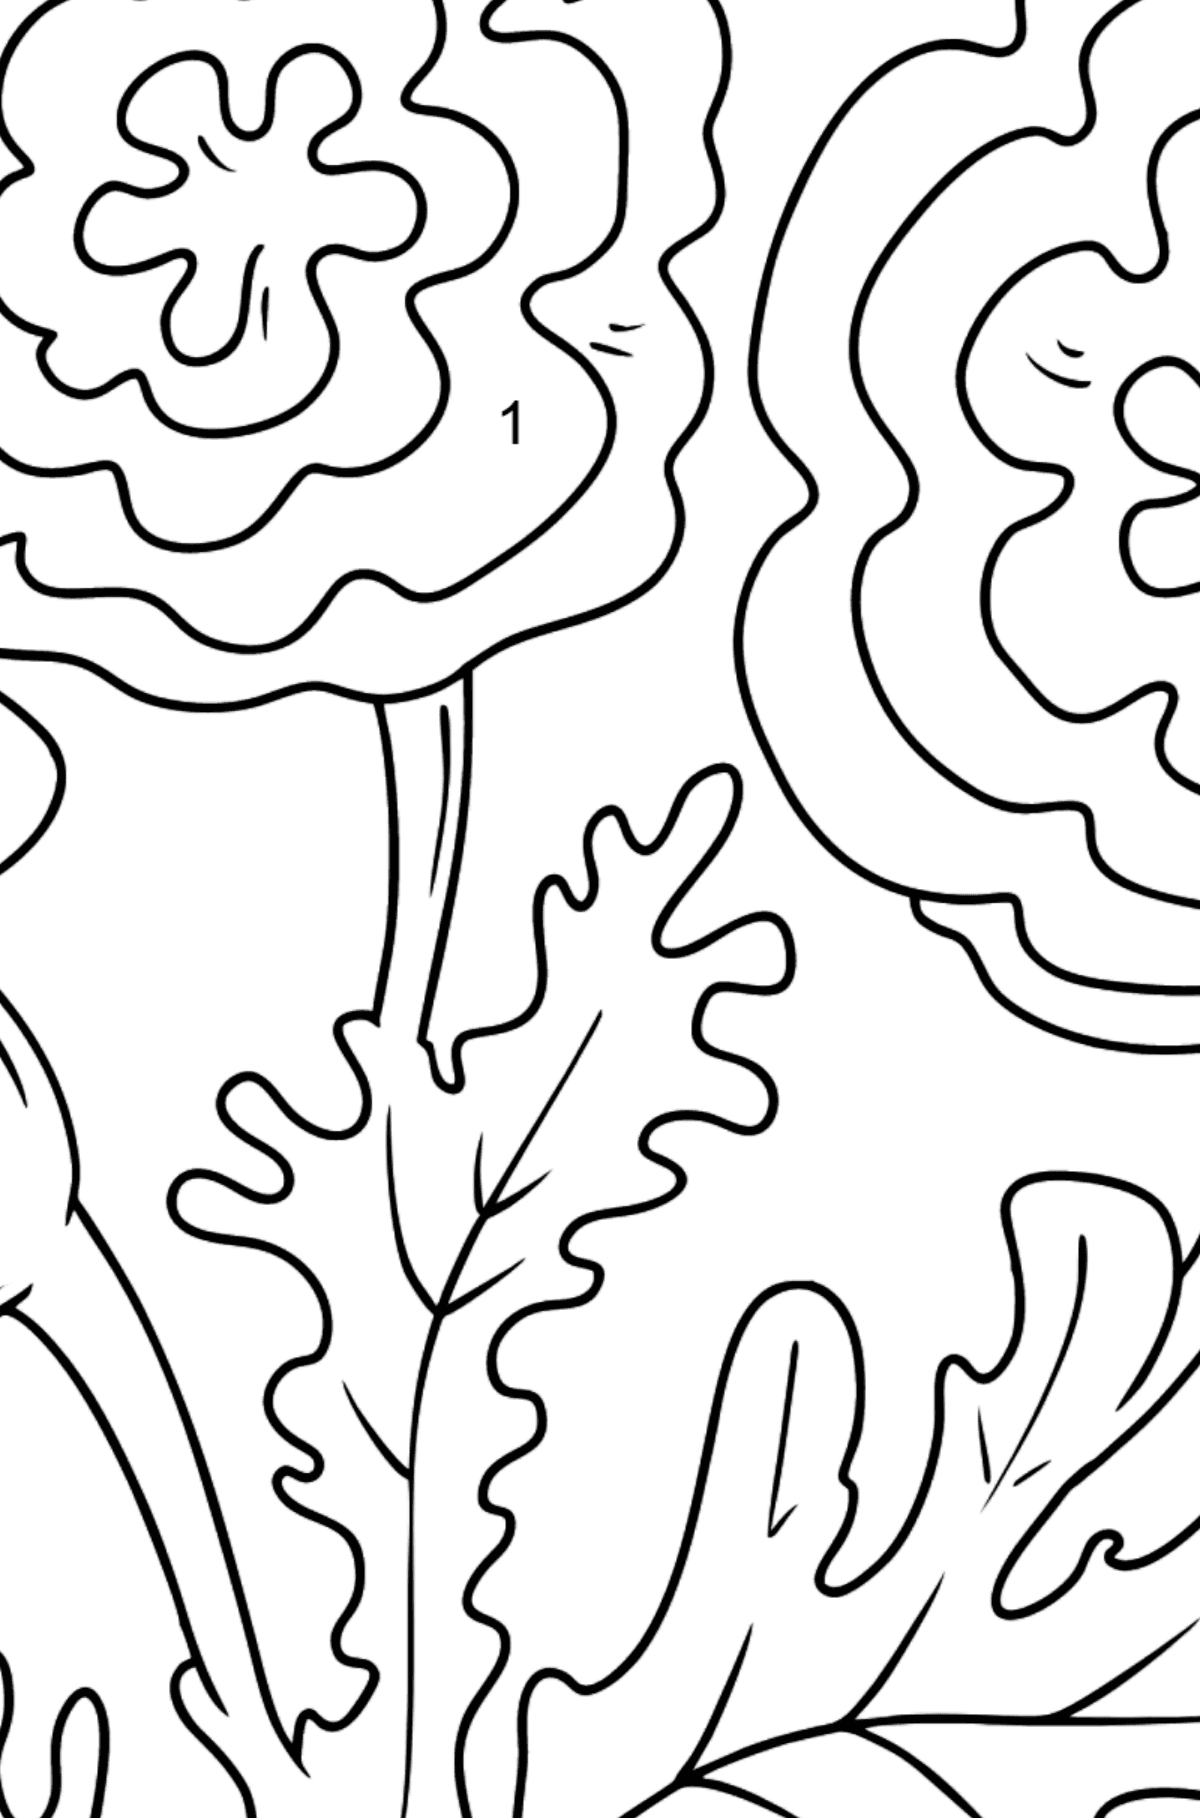 Coloring Page - Autumn flowers - Coloring by Numbers for Kids